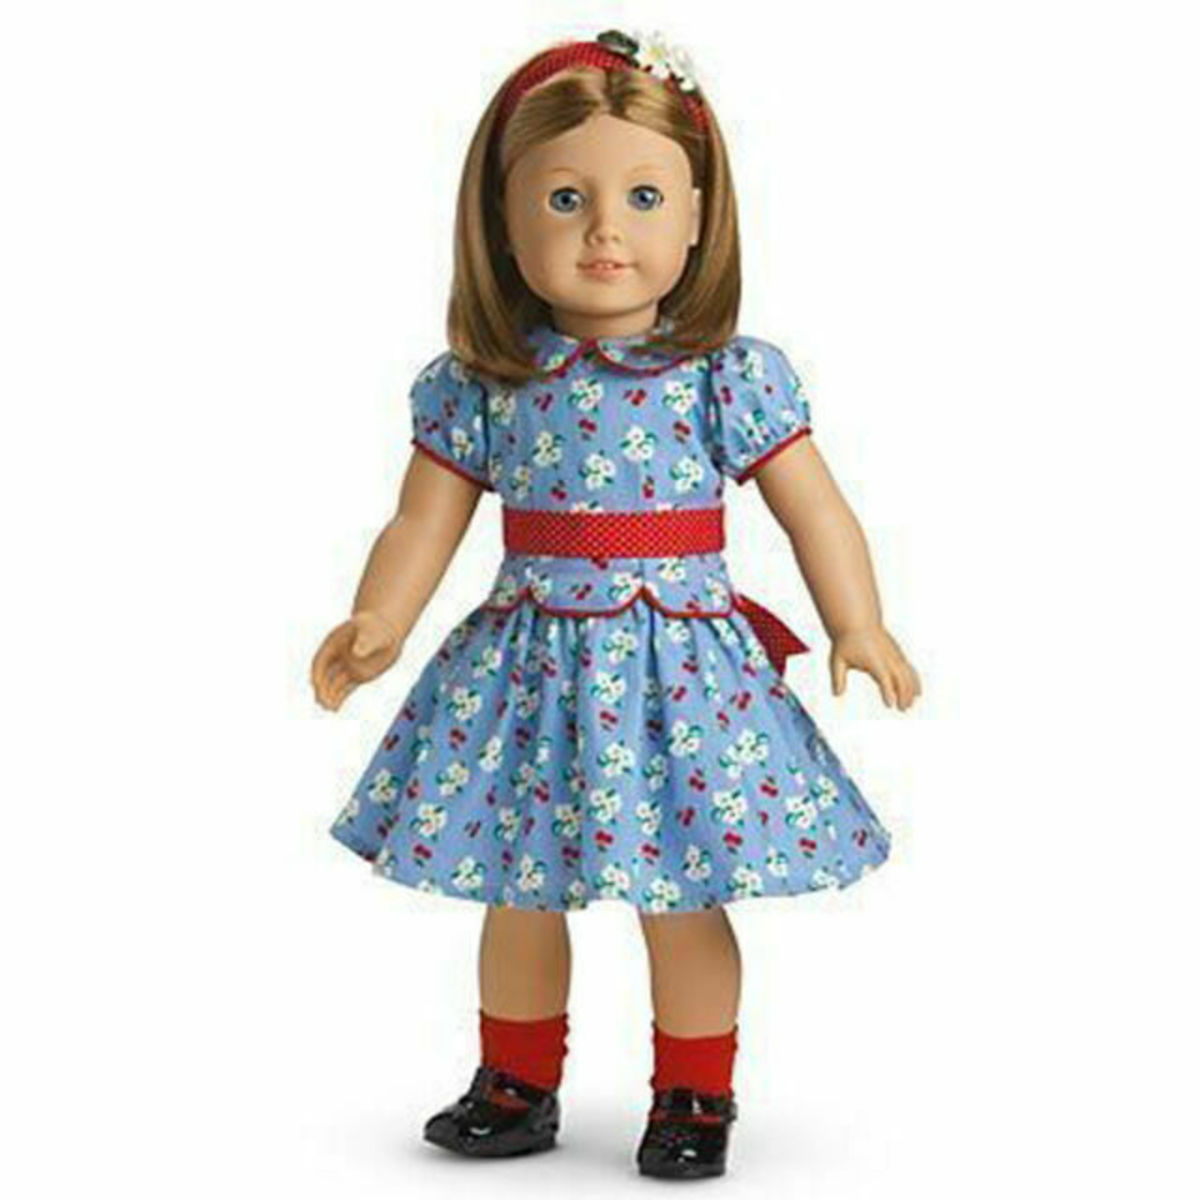 An Emily doll dressed in her Meet Outfit